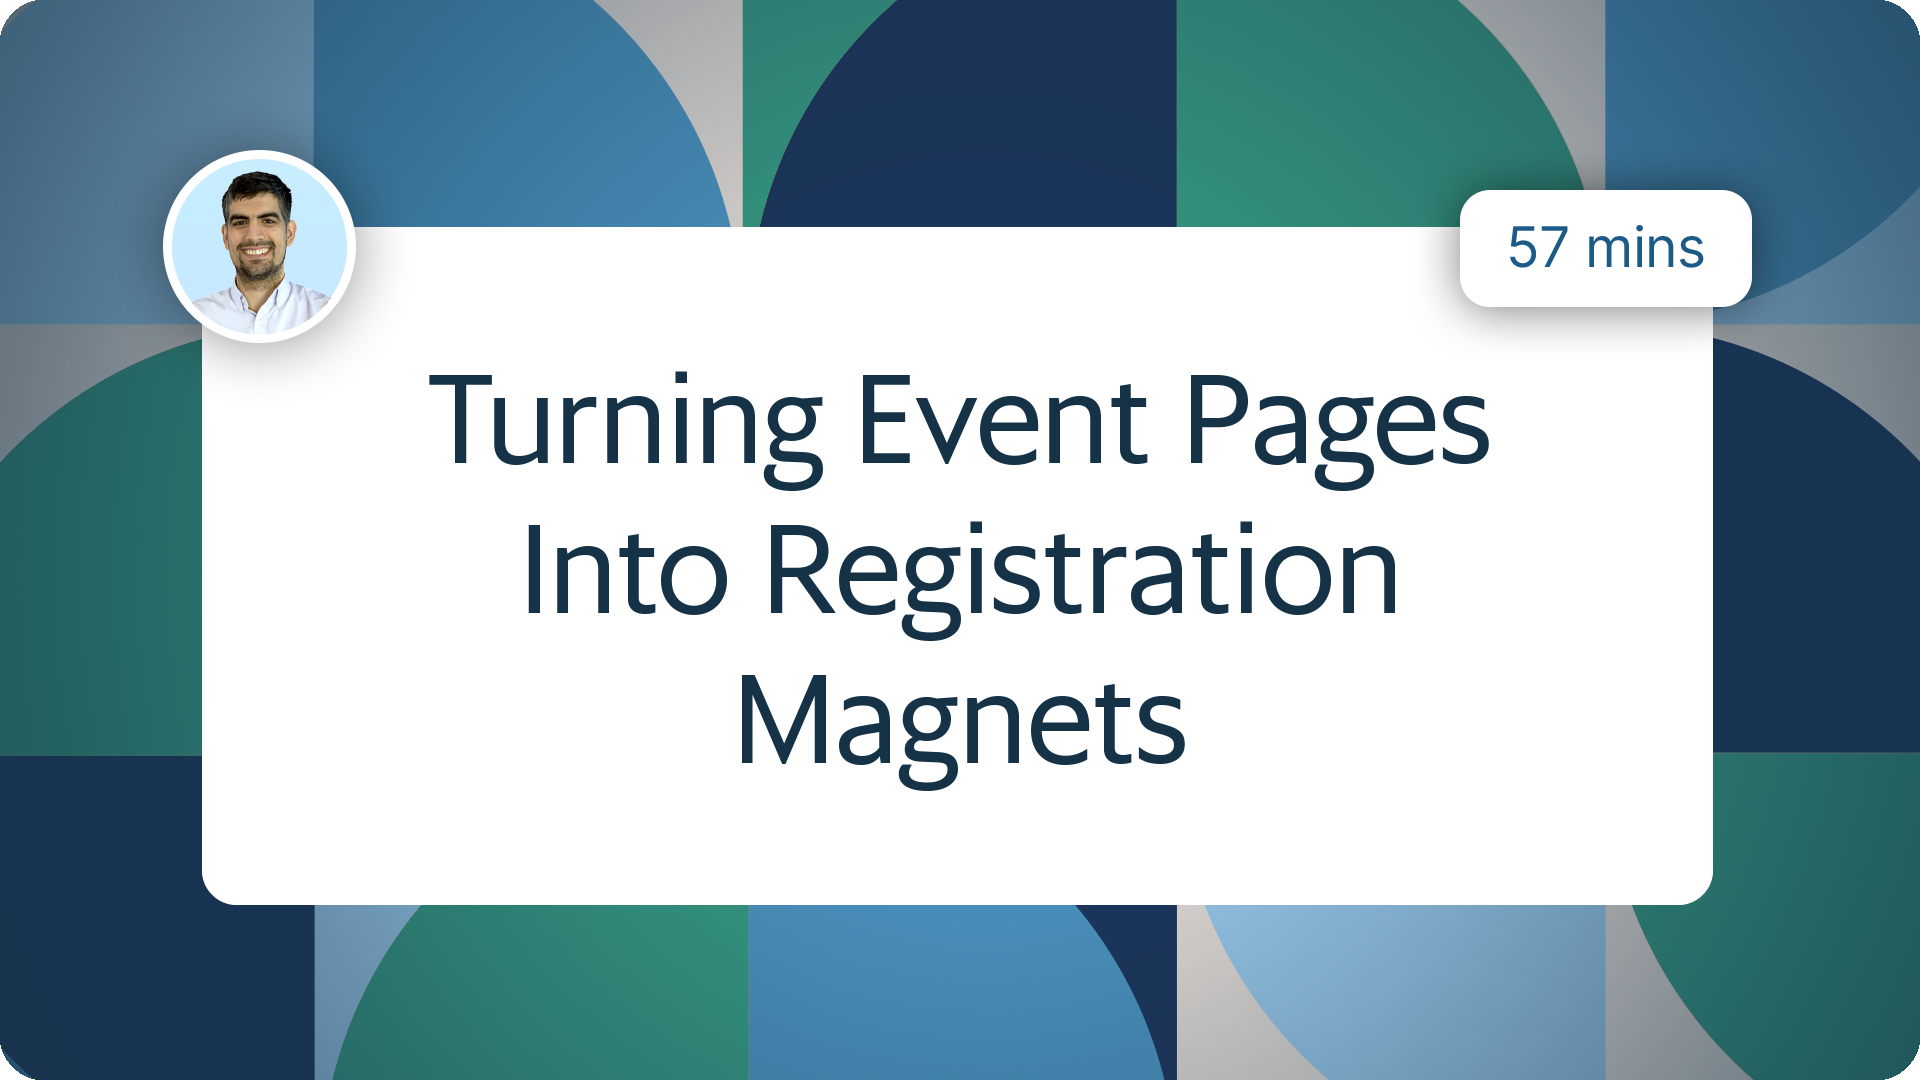 Turning Event Pages into Registration Magnets